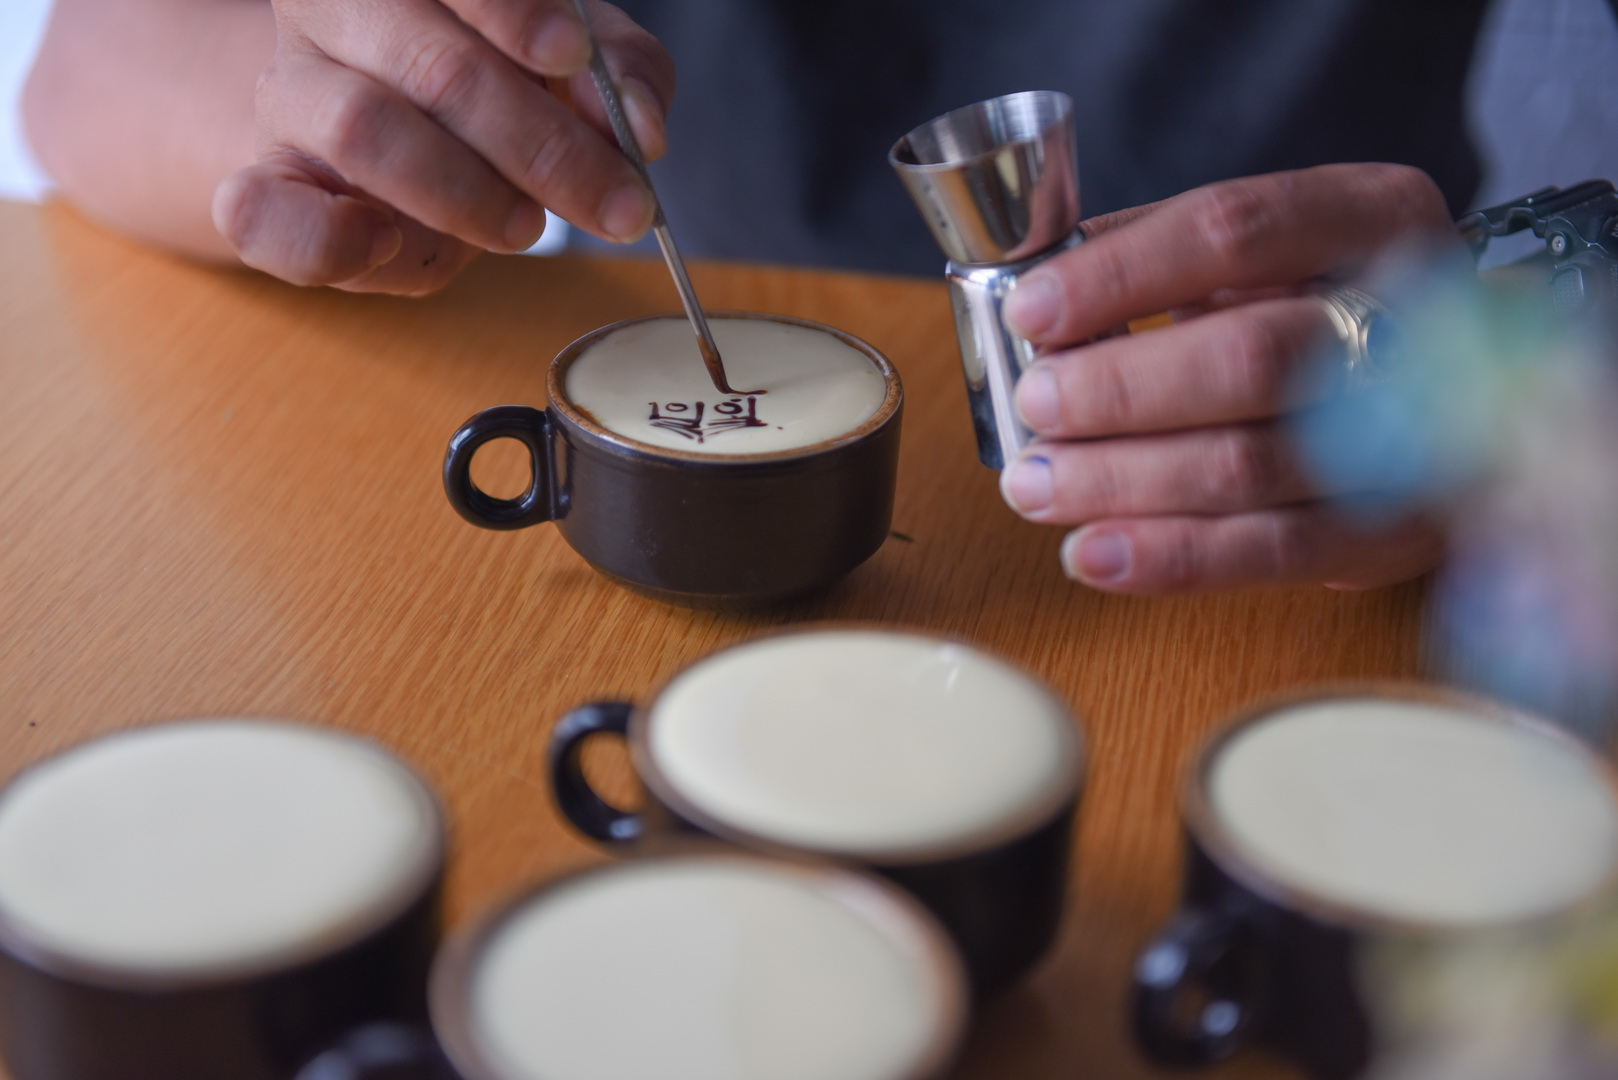 Cao Truong Minh is sketching on a cup of egg coffee before serving it to a customer at his coffee shop in Ho Chi Minh City's Binh Thanh District. Photo: Ngoc Phuong/ Tuoi Tre